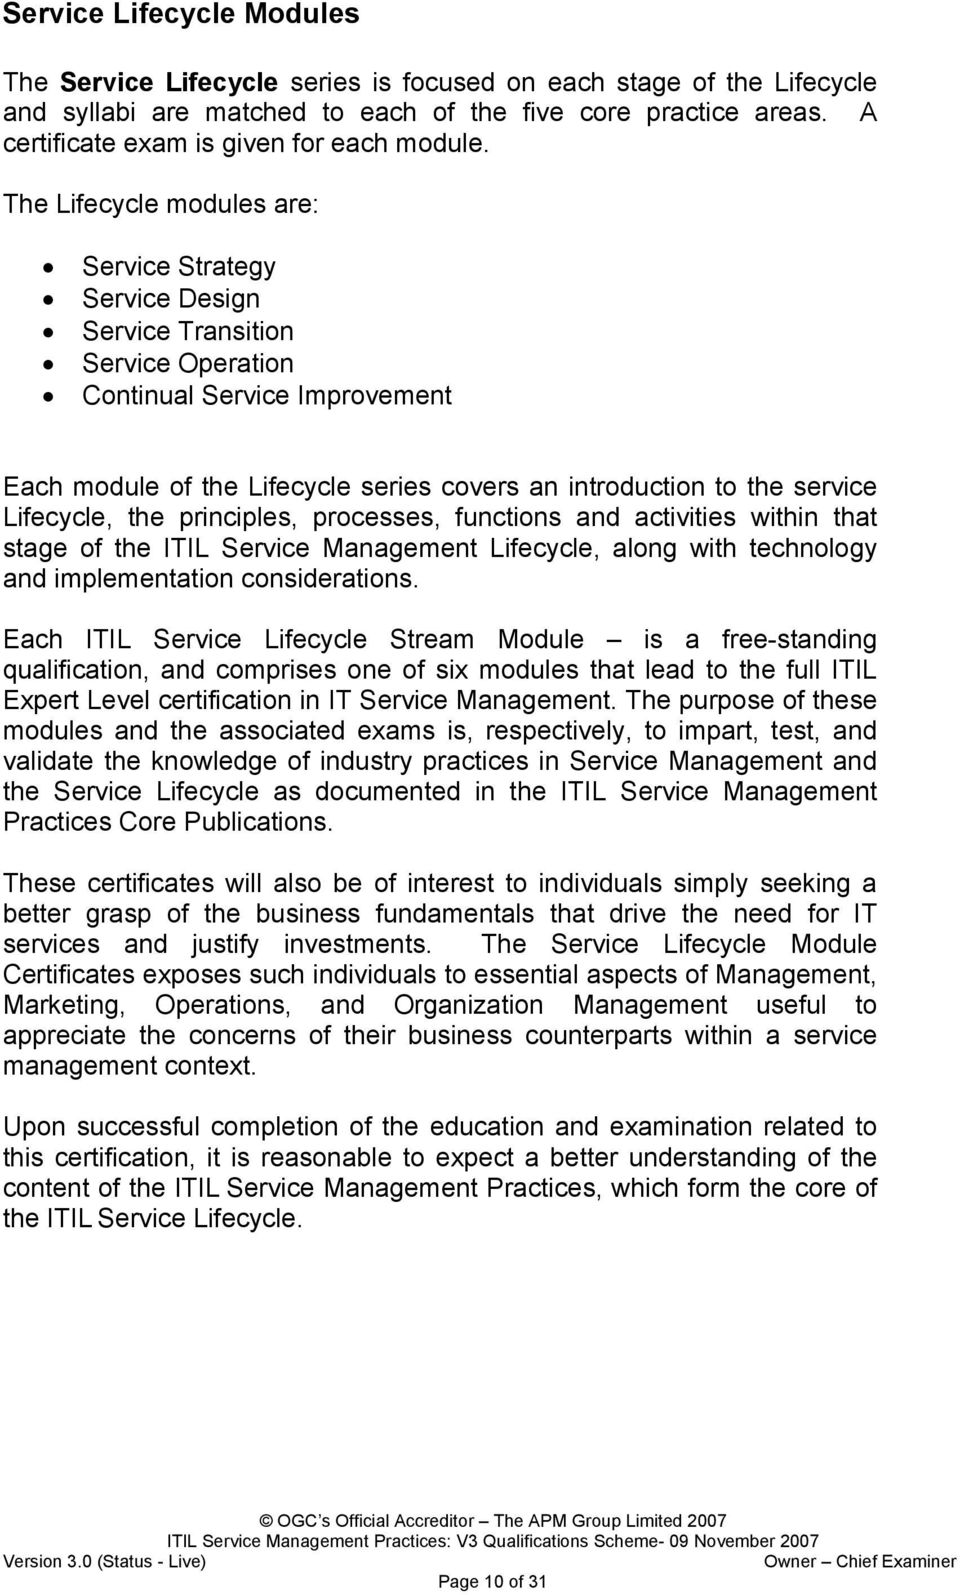 The Lifecycle modules are: Service Strategy Service Design Service Transition Service Operation Continual Service Improvement Each module of the Lifecycle series covers an introduction to the service